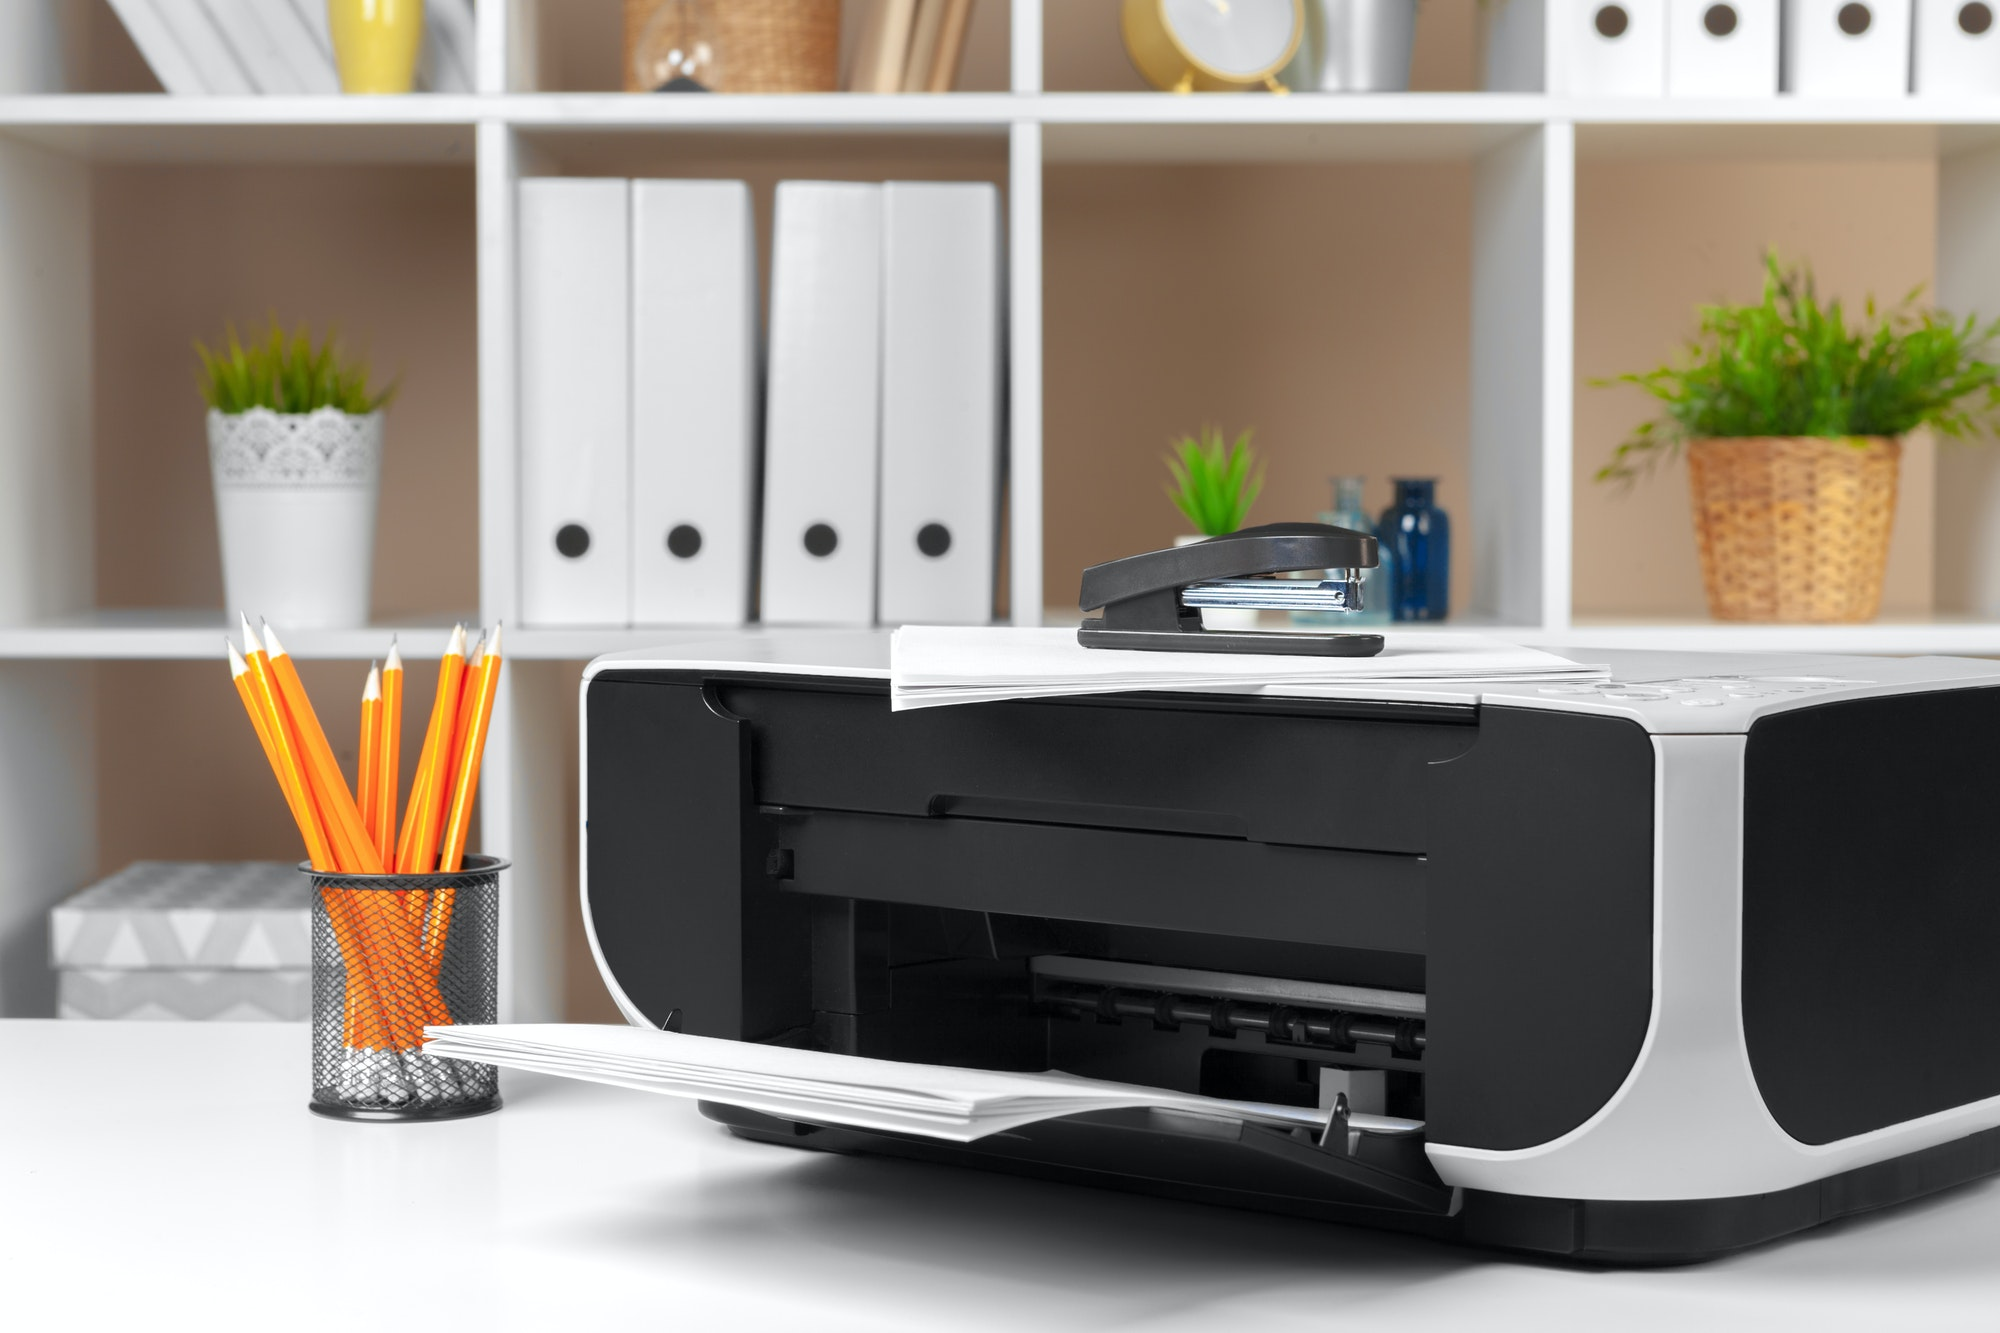 Printer, copier, scanner in office. Workplace. Close up.